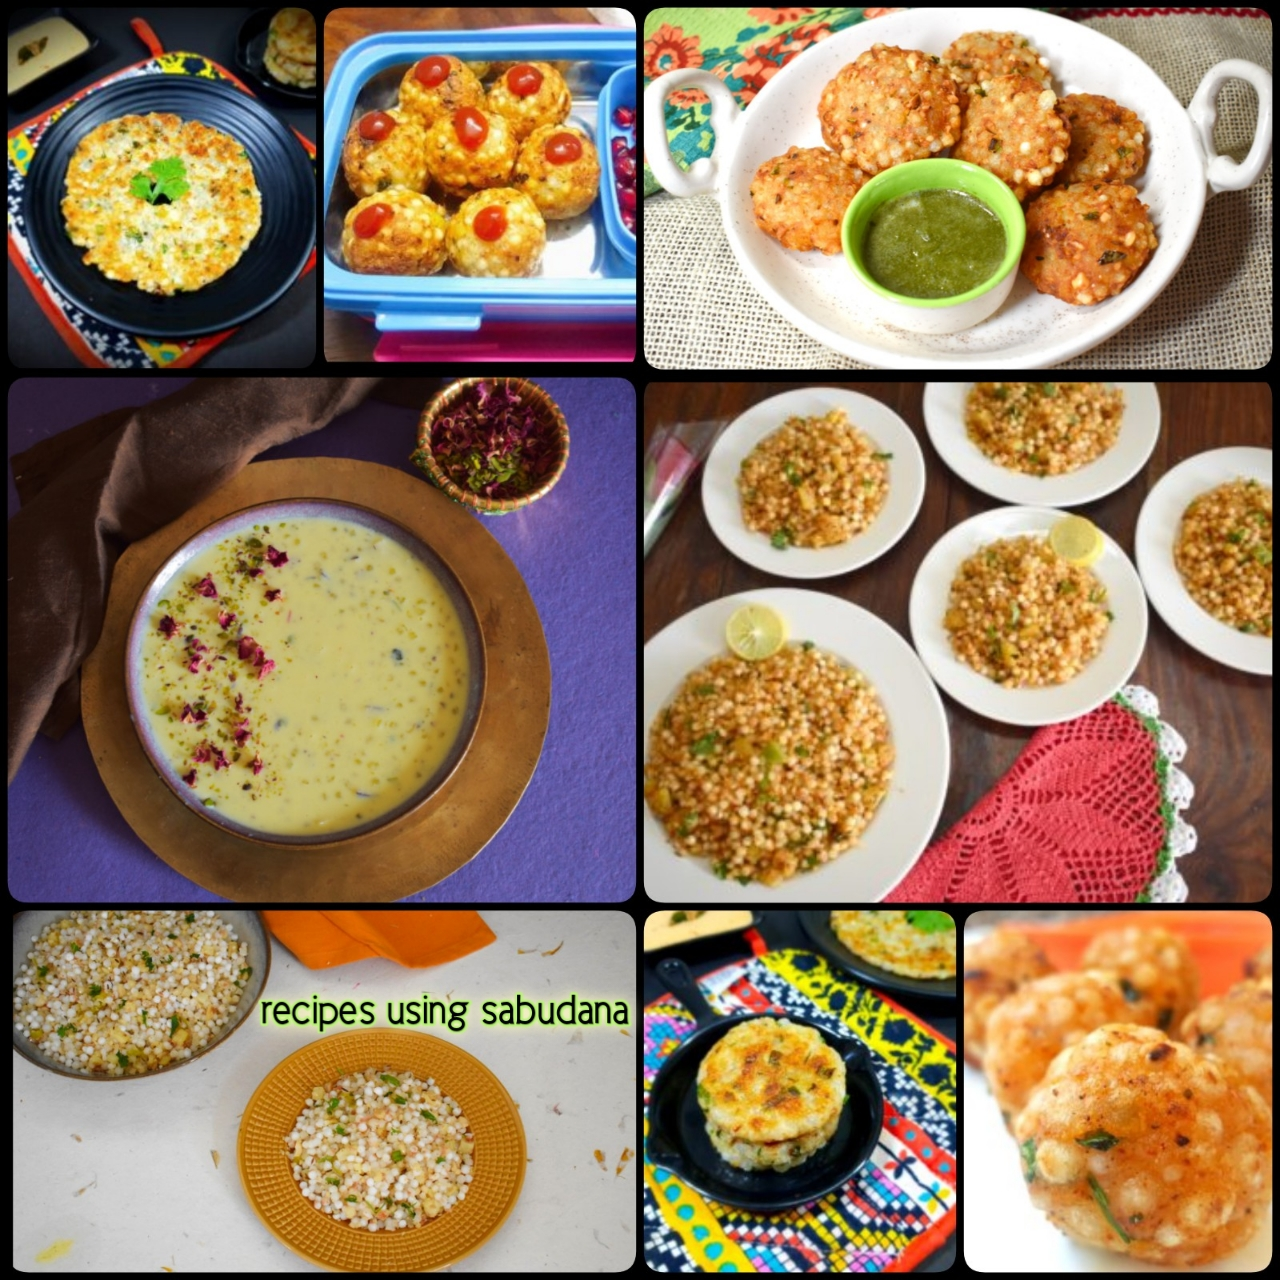 Recipes using Sabudana